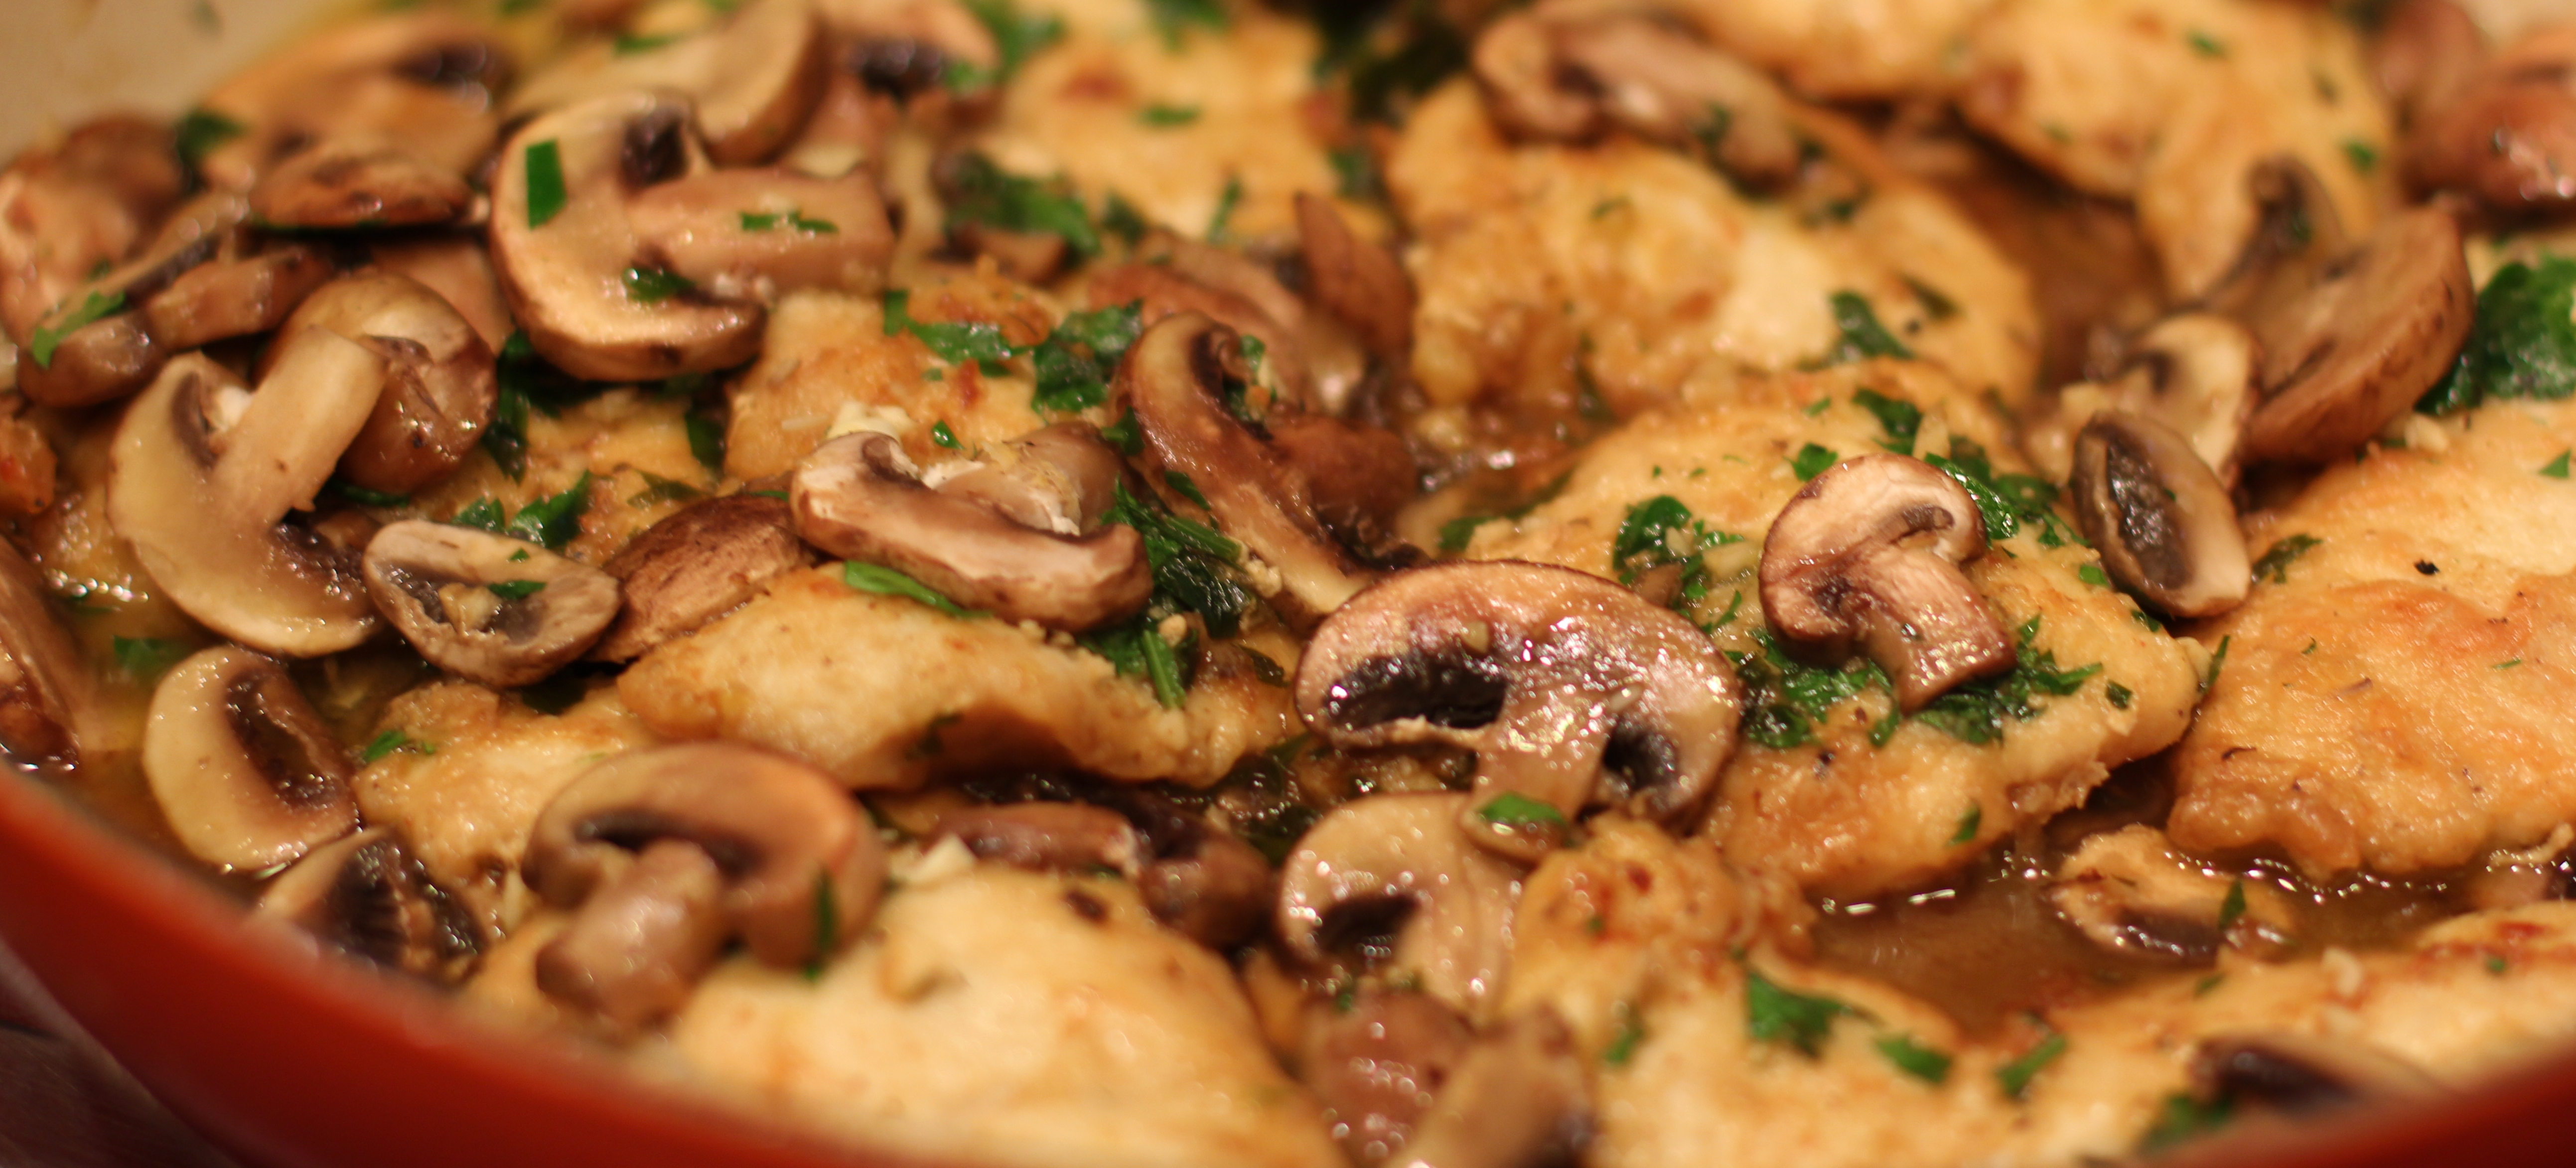 ... for a variety of recipes such as chicken parmesan or veal scaloppine